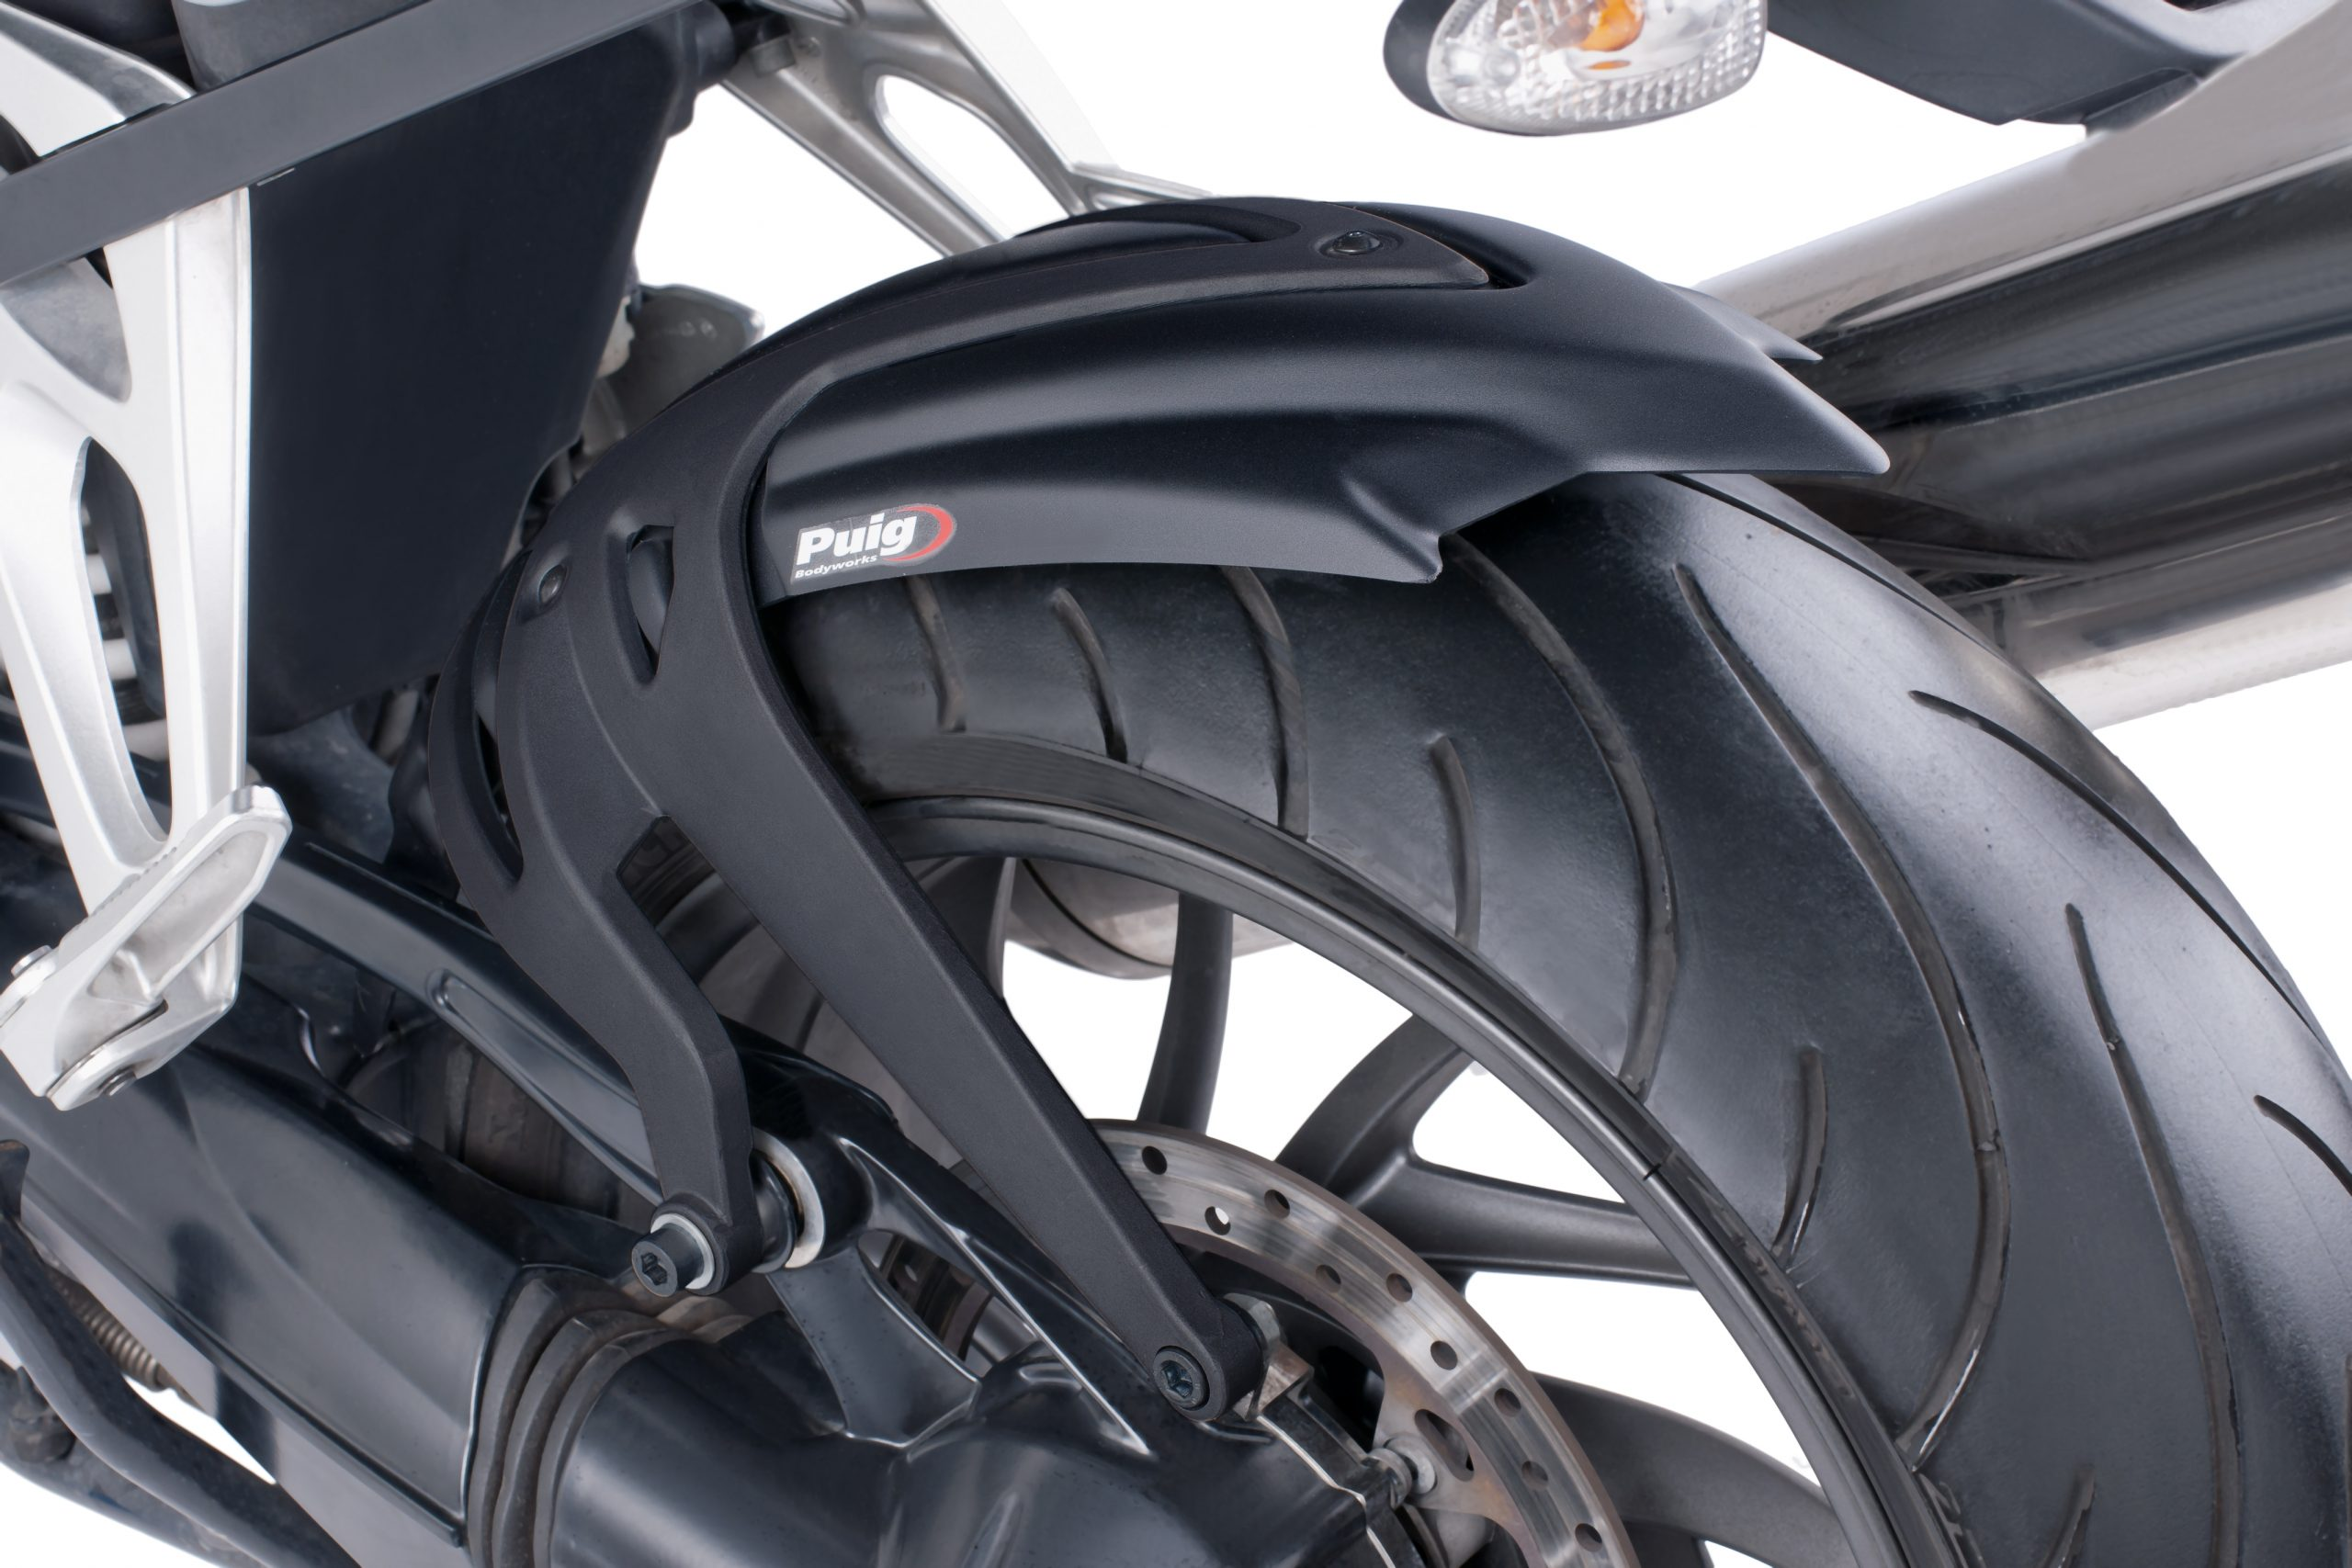 Guardabarros Trasero BMW K1200R/S (2004-2008) Puig Color Negro Mate - Ref. 5887J